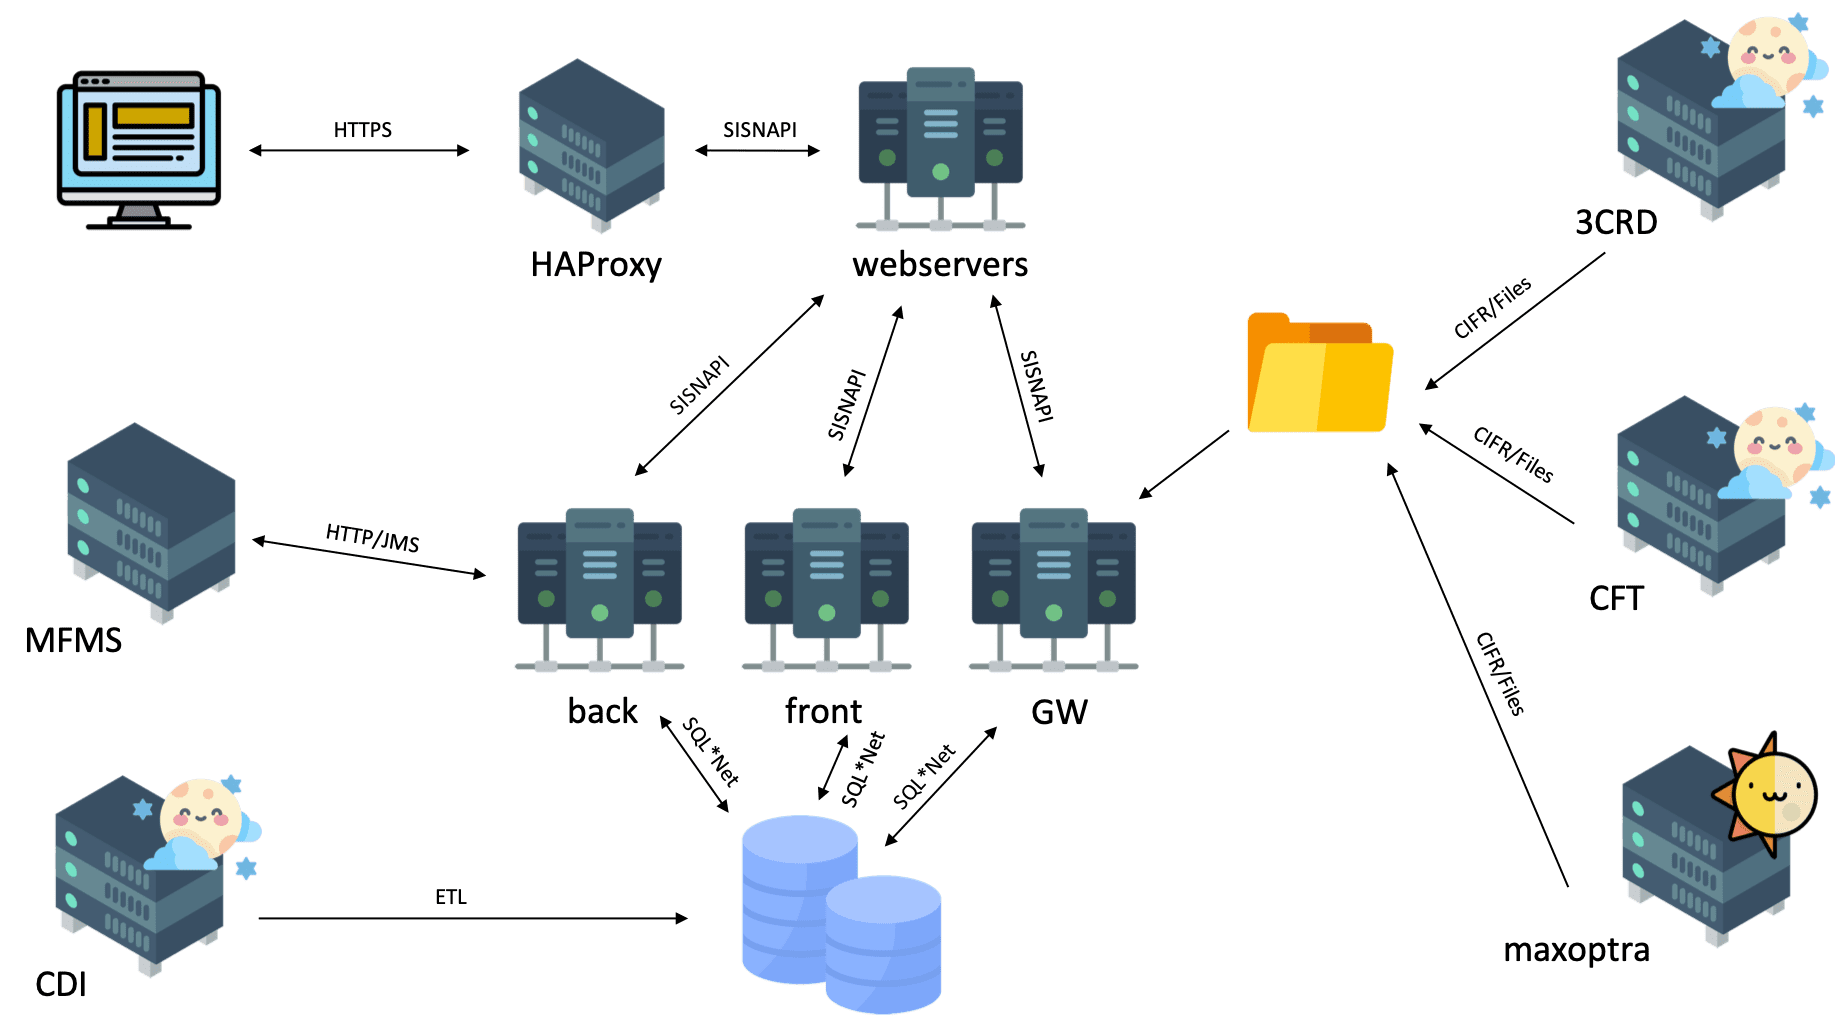 How to load test Siebel CRM part of the system